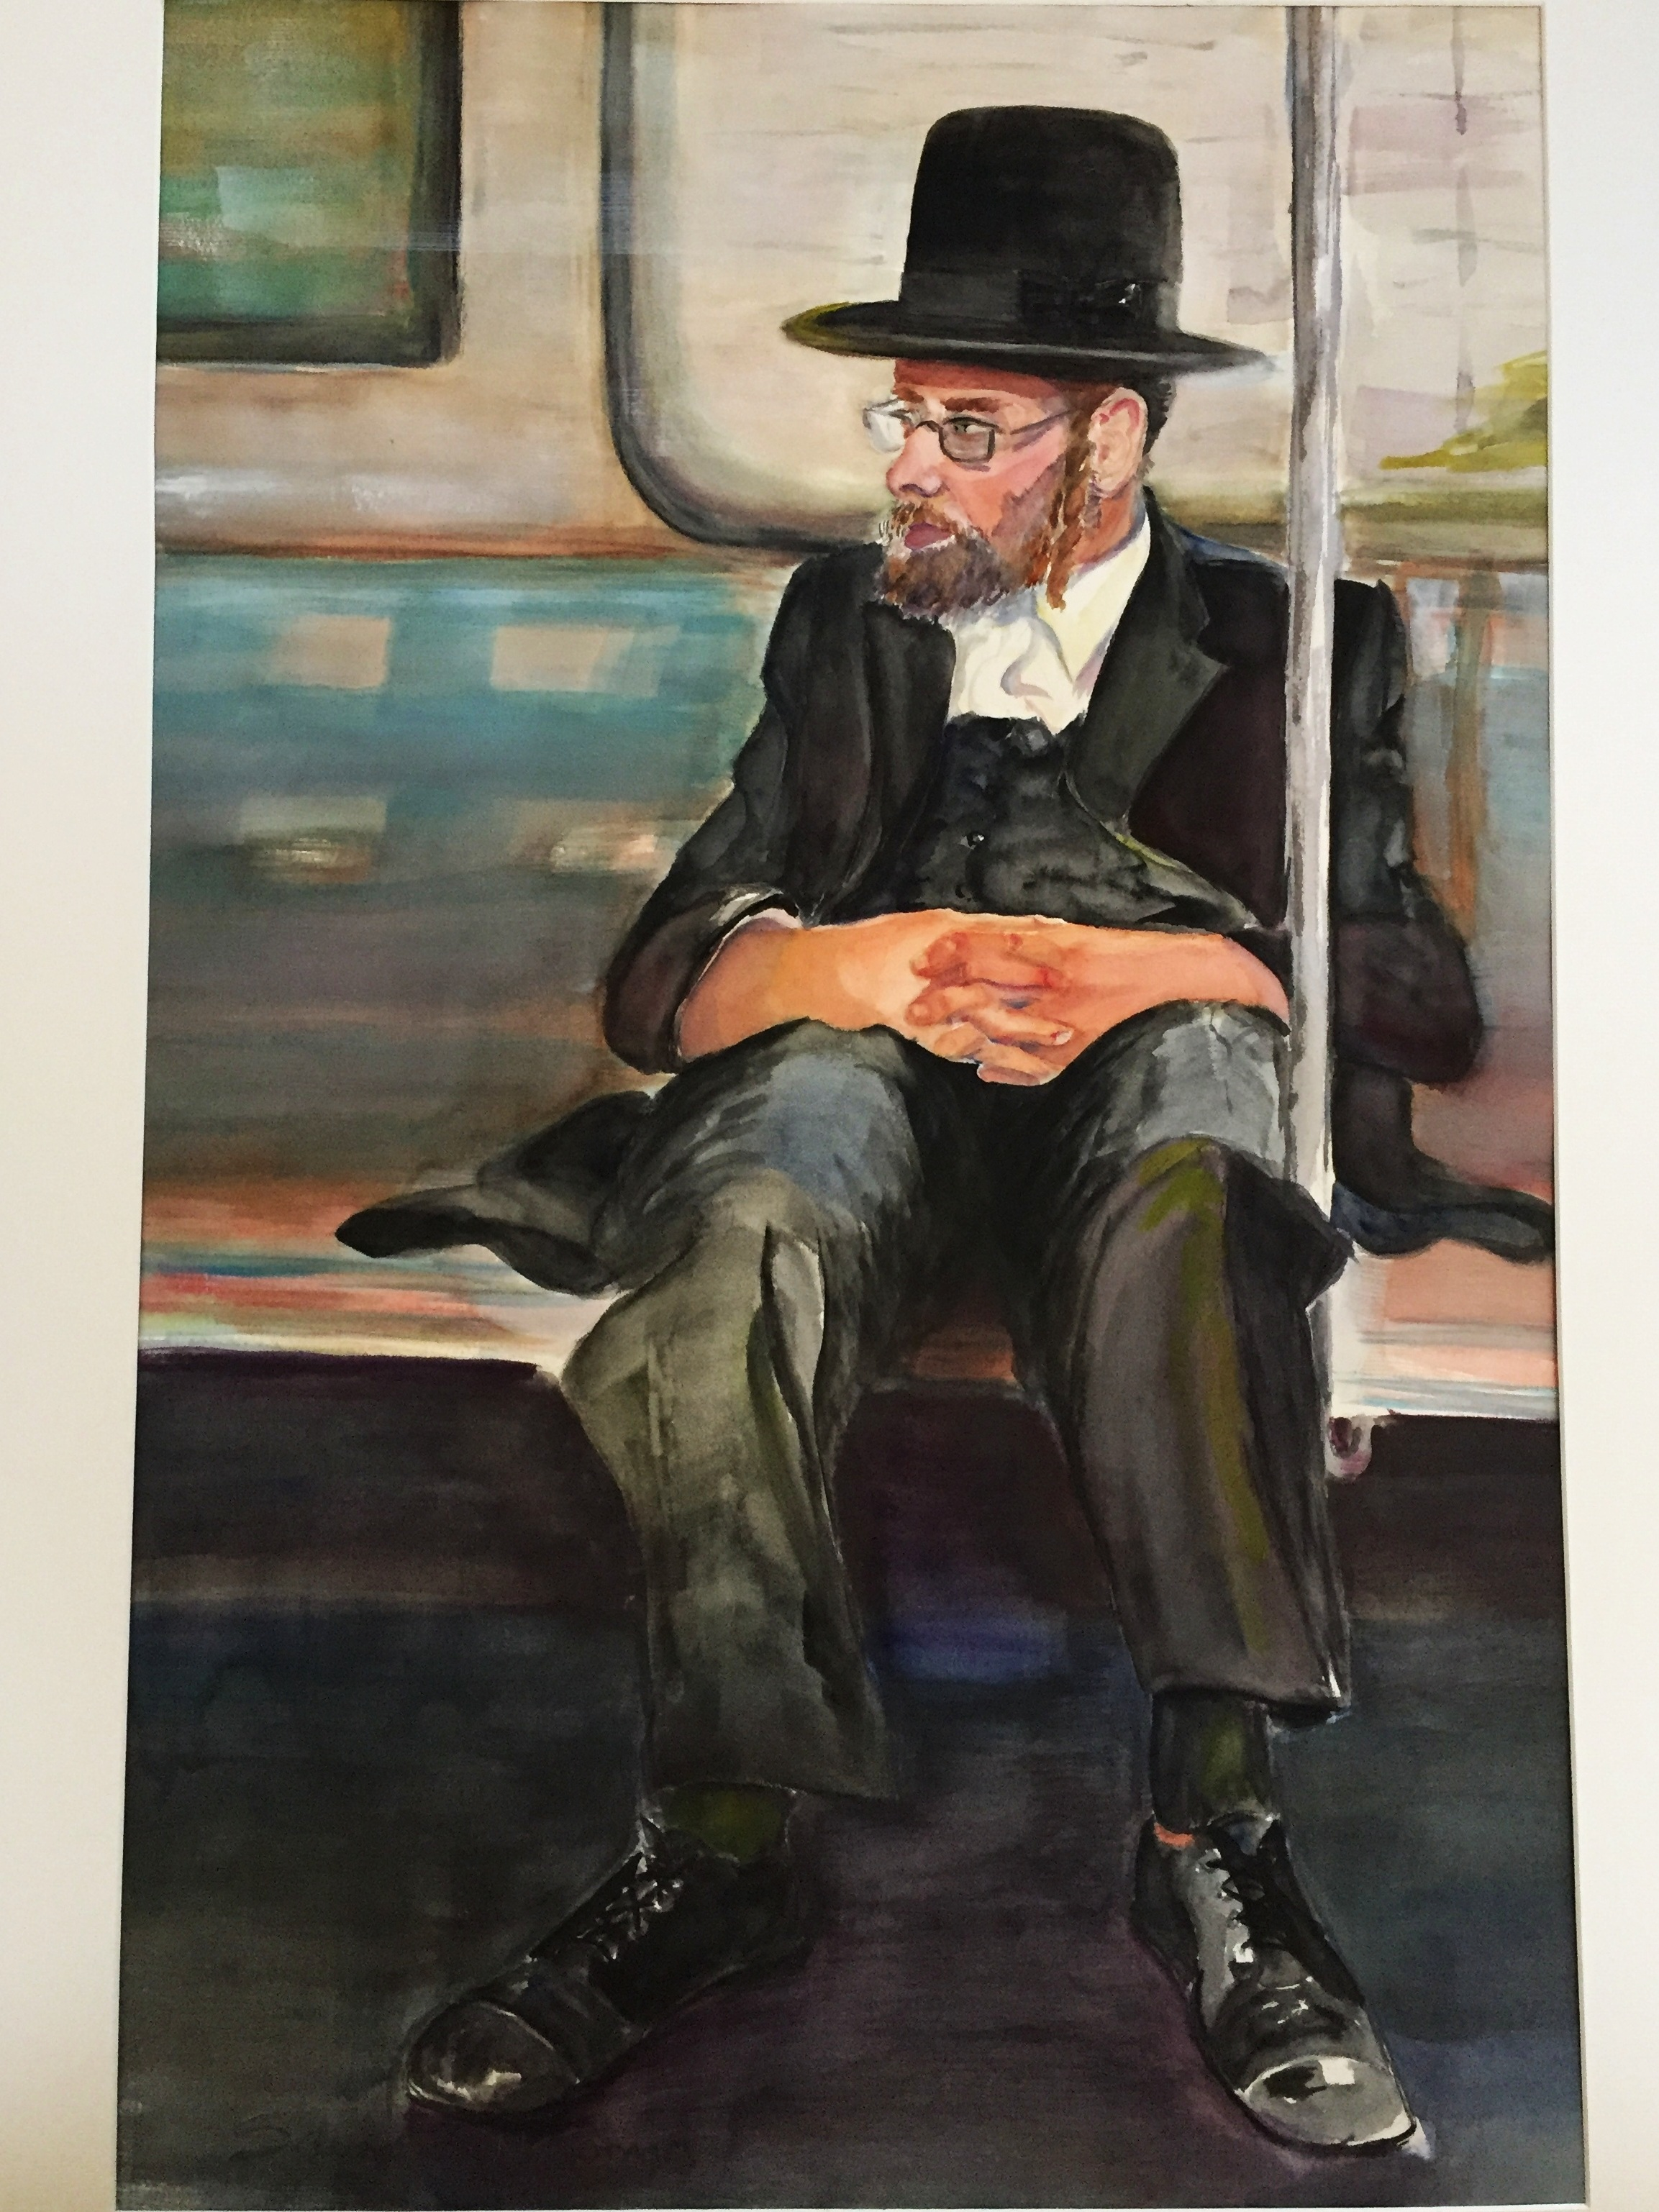 SUBWAY RABBI